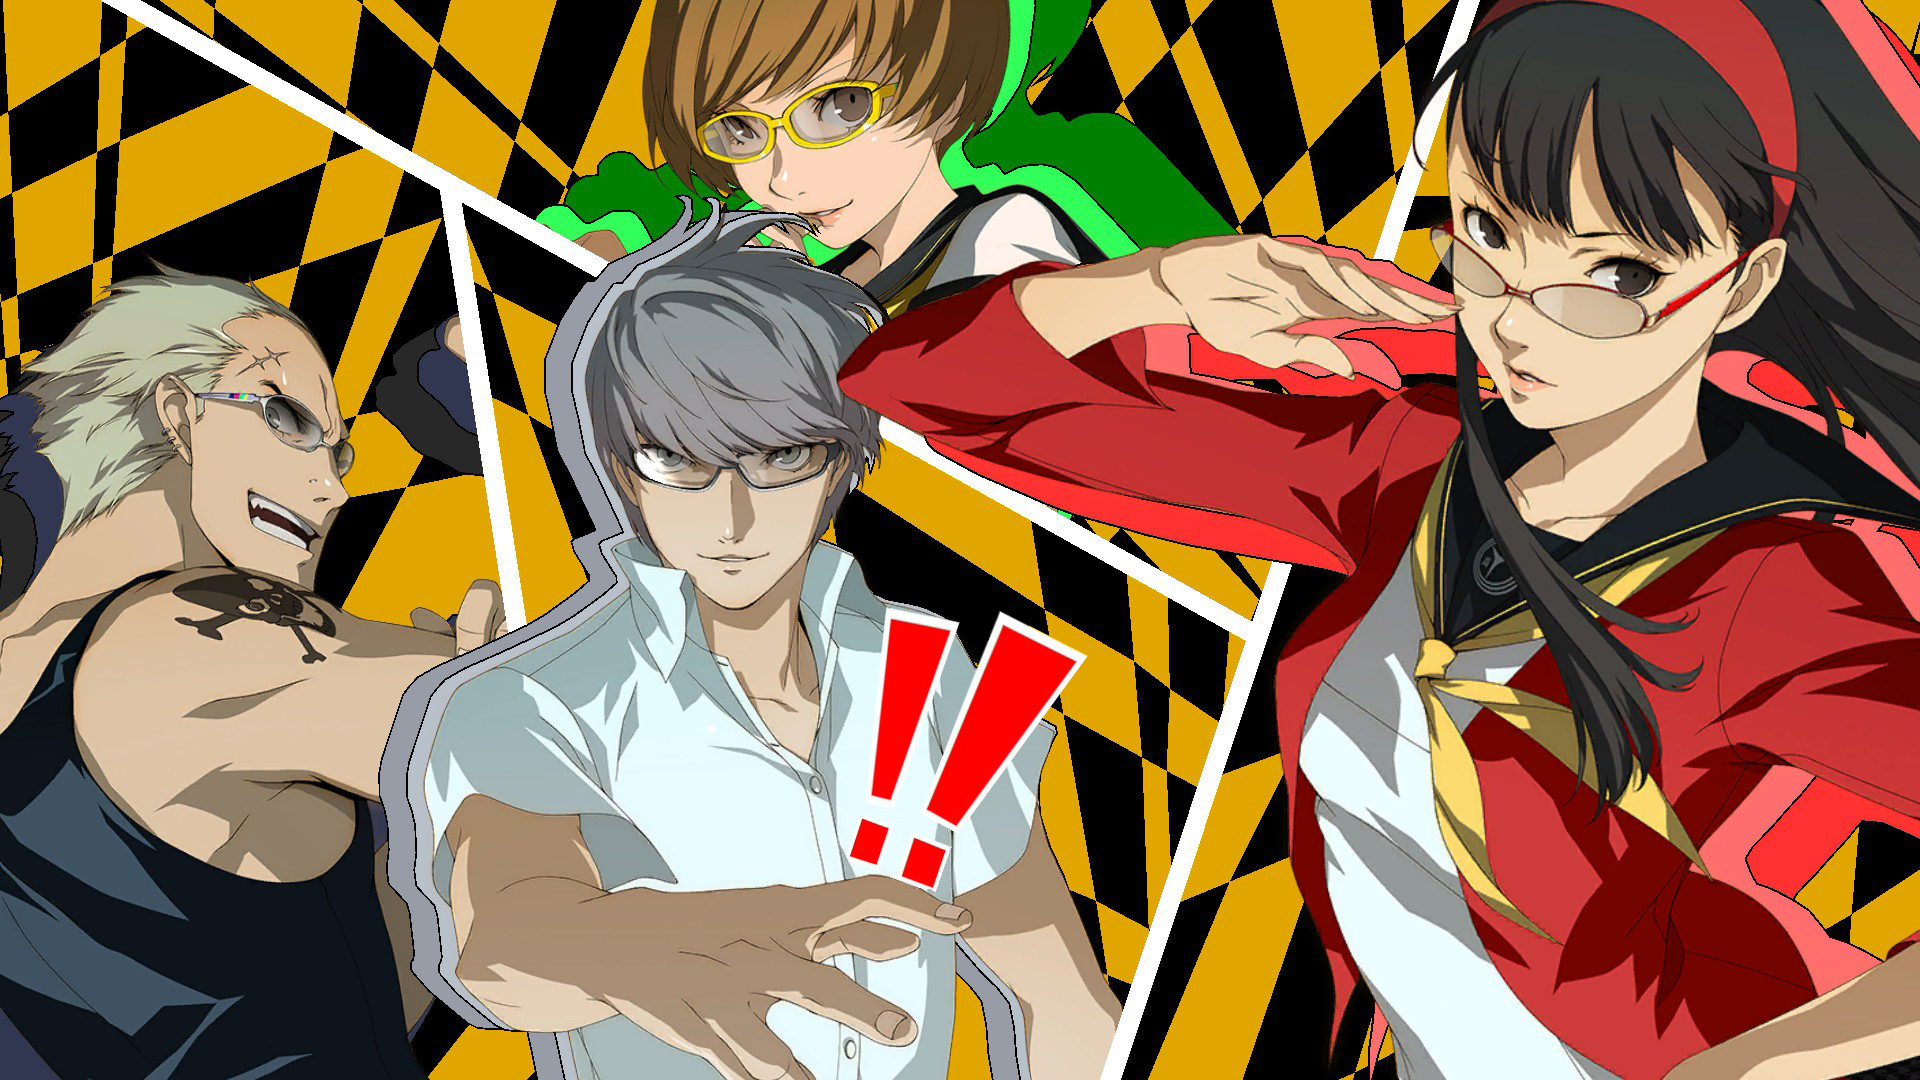 PC Gaming Show Persona 4 Golden Steam